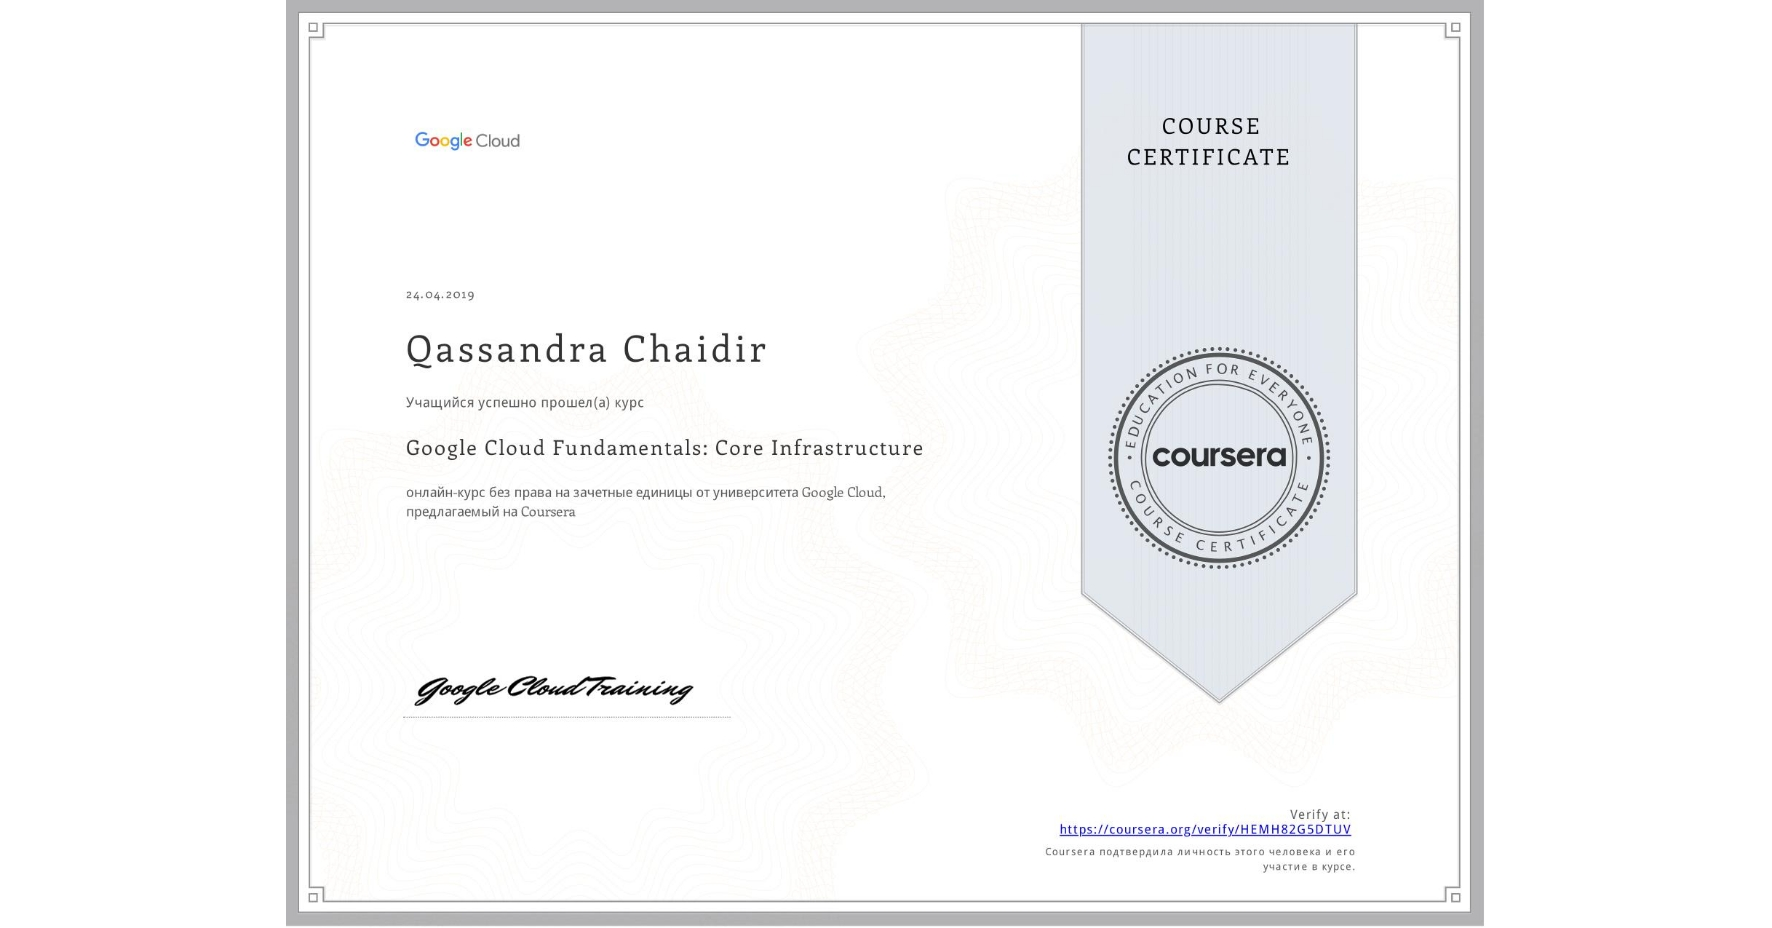 View certificate for Qassandra Chaidir, Google Cloud Platform Fundamentals: Core Infrastructure, an online non-credit course authorized by Google Cloud and offered through Coursera